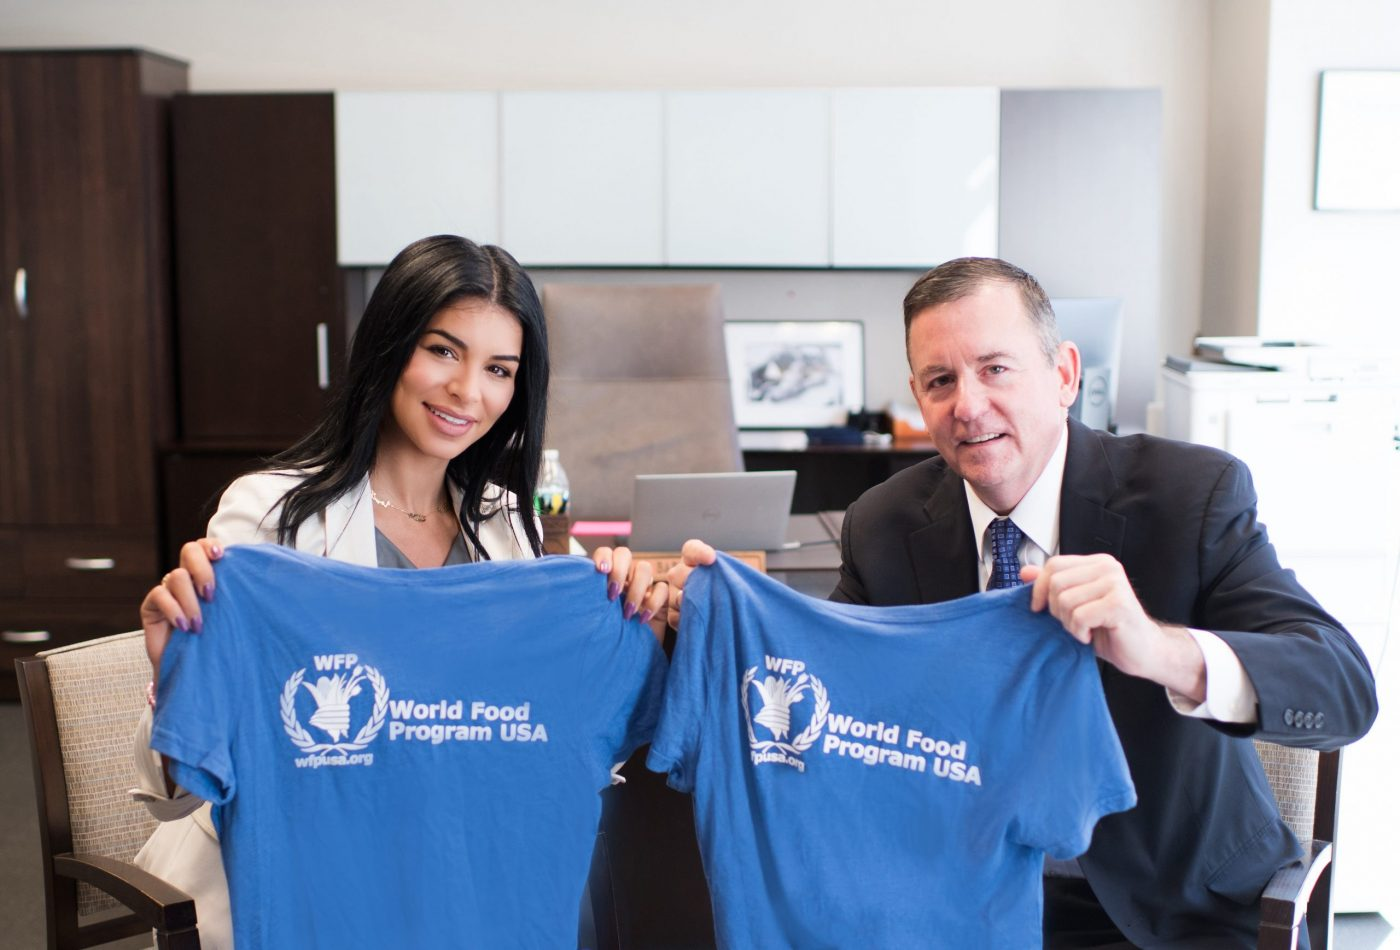 WFP USA's President and CEO Barron Segar Welcomes Rima Fakih